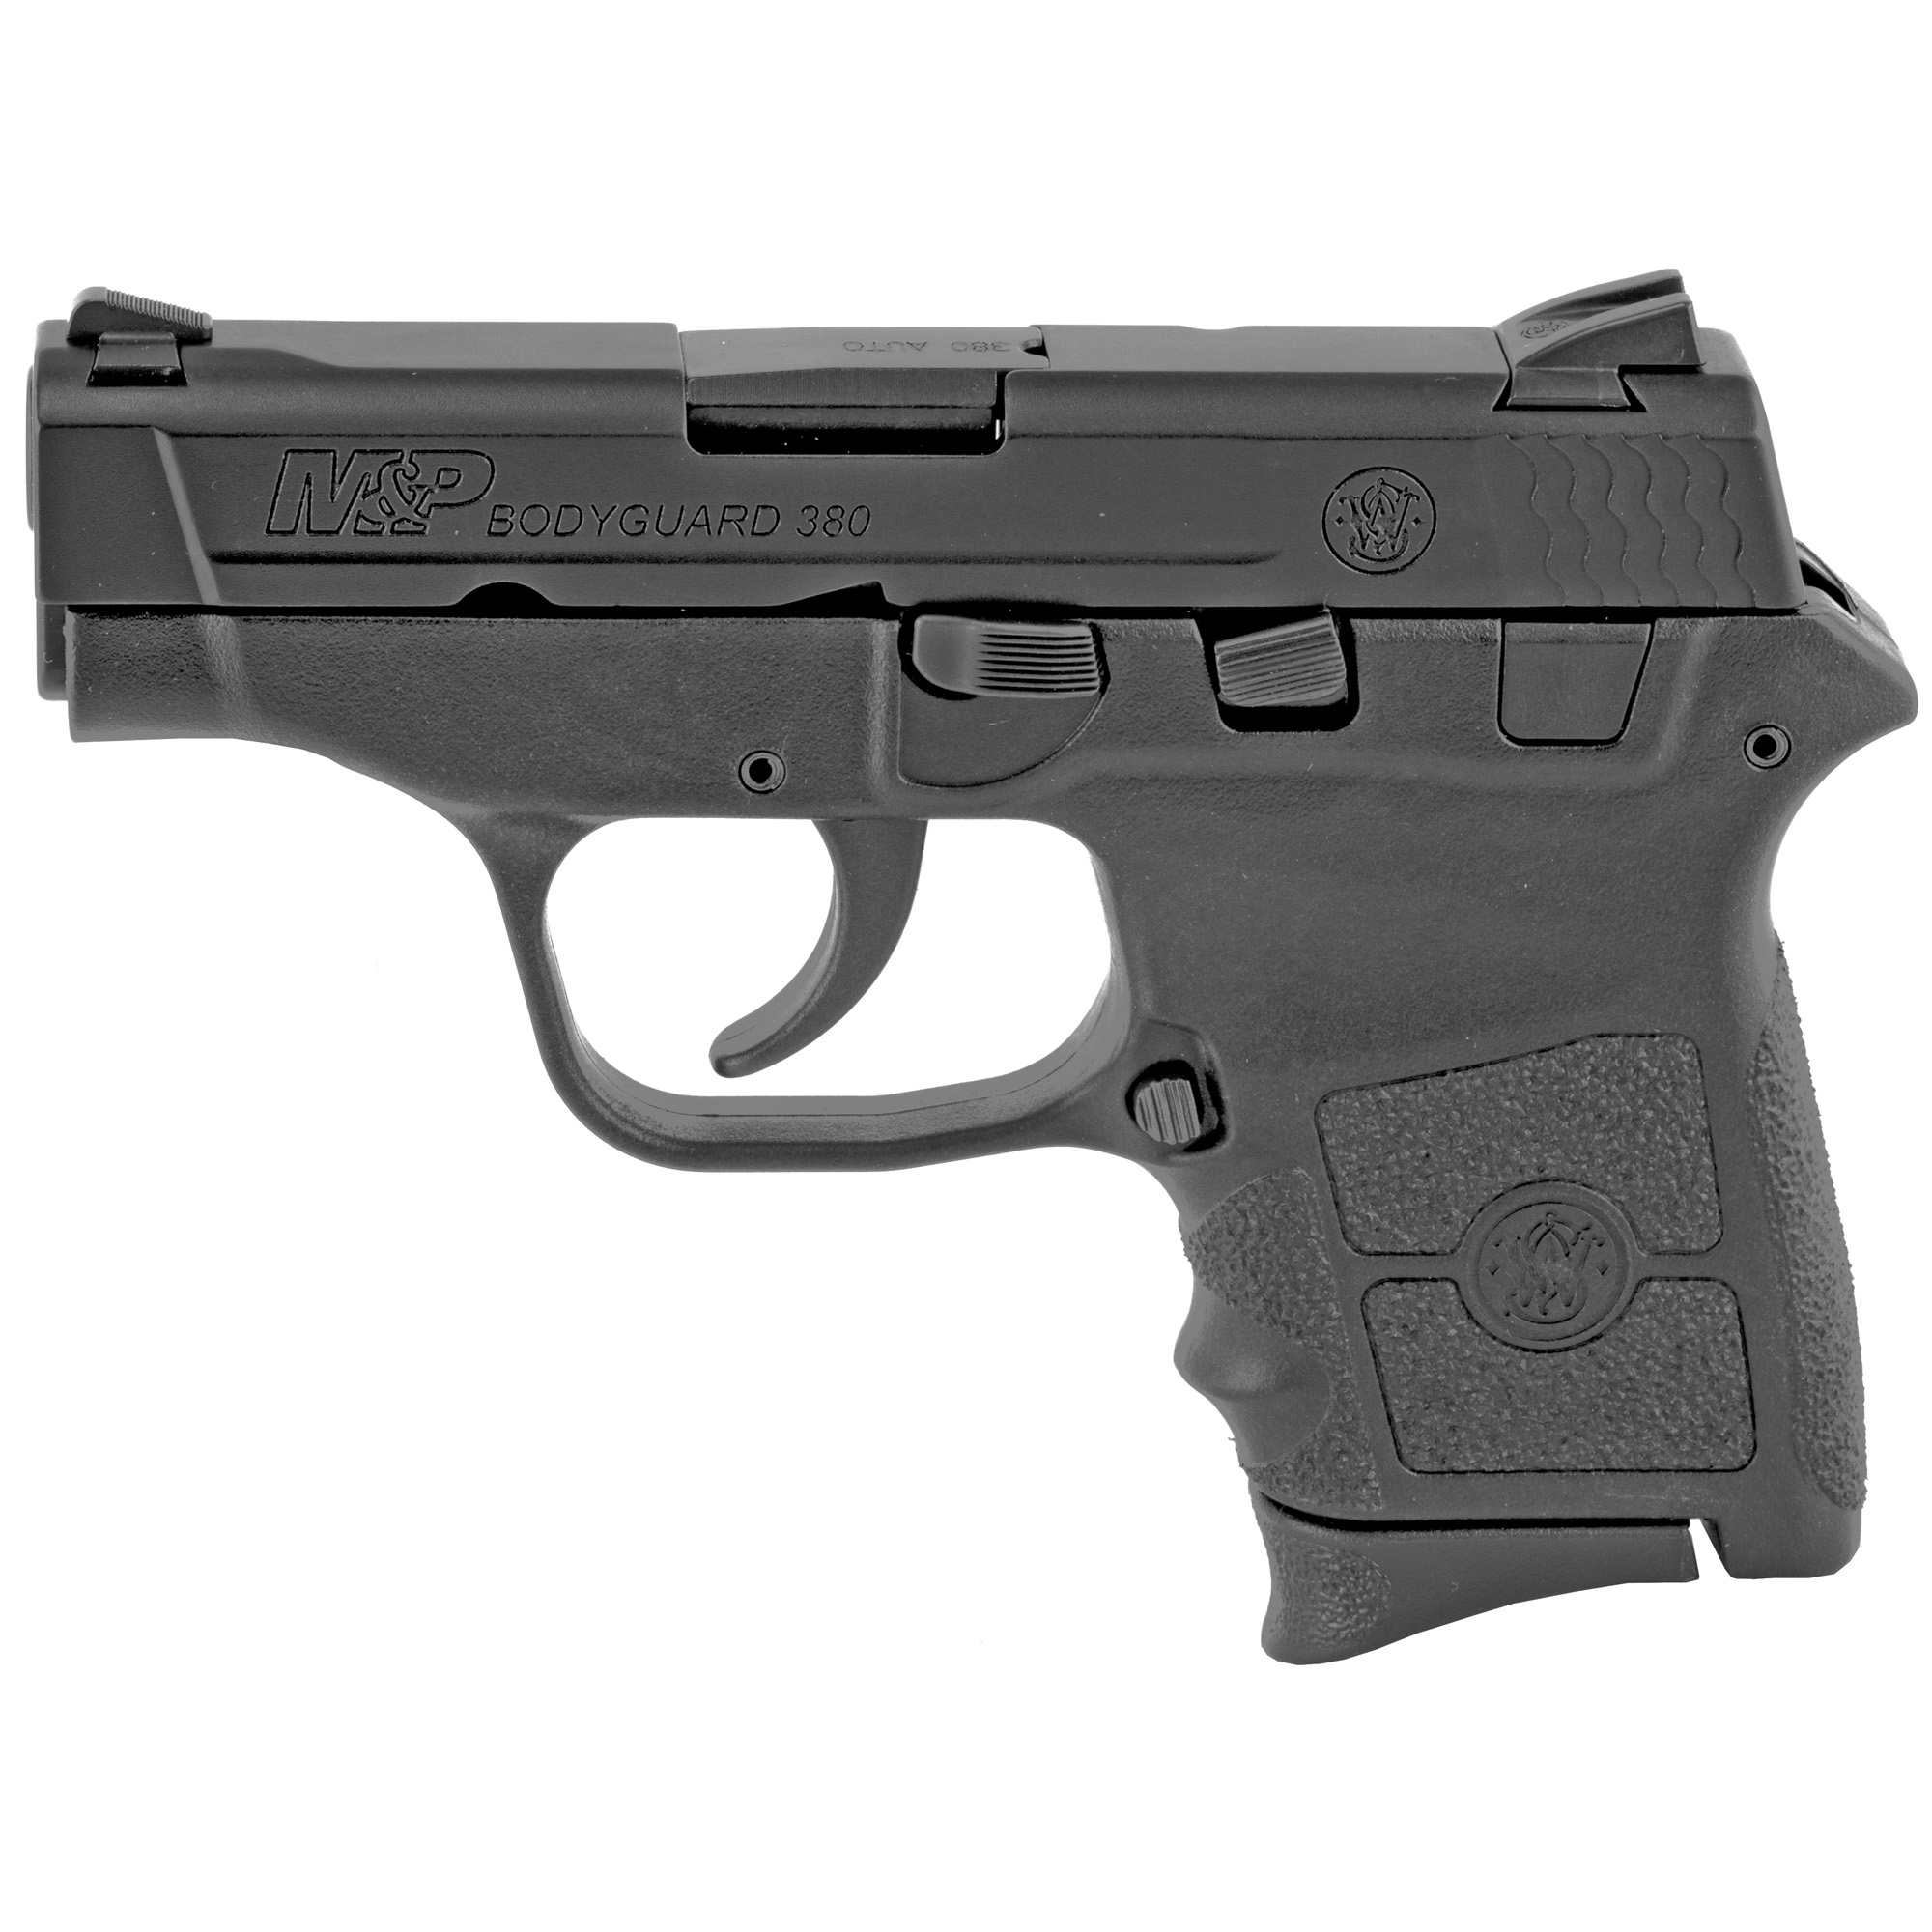 "Compact and sleek"" the M&P BODYGUARD 380 delivers personal protection in an easy-to-carry"" comfortable platform. Chambered for .380 ACP"" the lightweight pistol features a high-strength polymer frame with a black"" matte-coated stainless-steel slide and barrel. The new M&P BODYGUARD 380 retains original design features including a 2 3/4-inch barrel"" which contributes to an overall length of 5 1/4 inches and an unloaded weight of only 12.3 ounces making it perfectly suited for concealed carry. Lightweight"" simple to use and featuring integrated laser sights - nothing protects like a BODYGUARD. Two magazines included"" one flat butt plate and one finger rest butt plate."